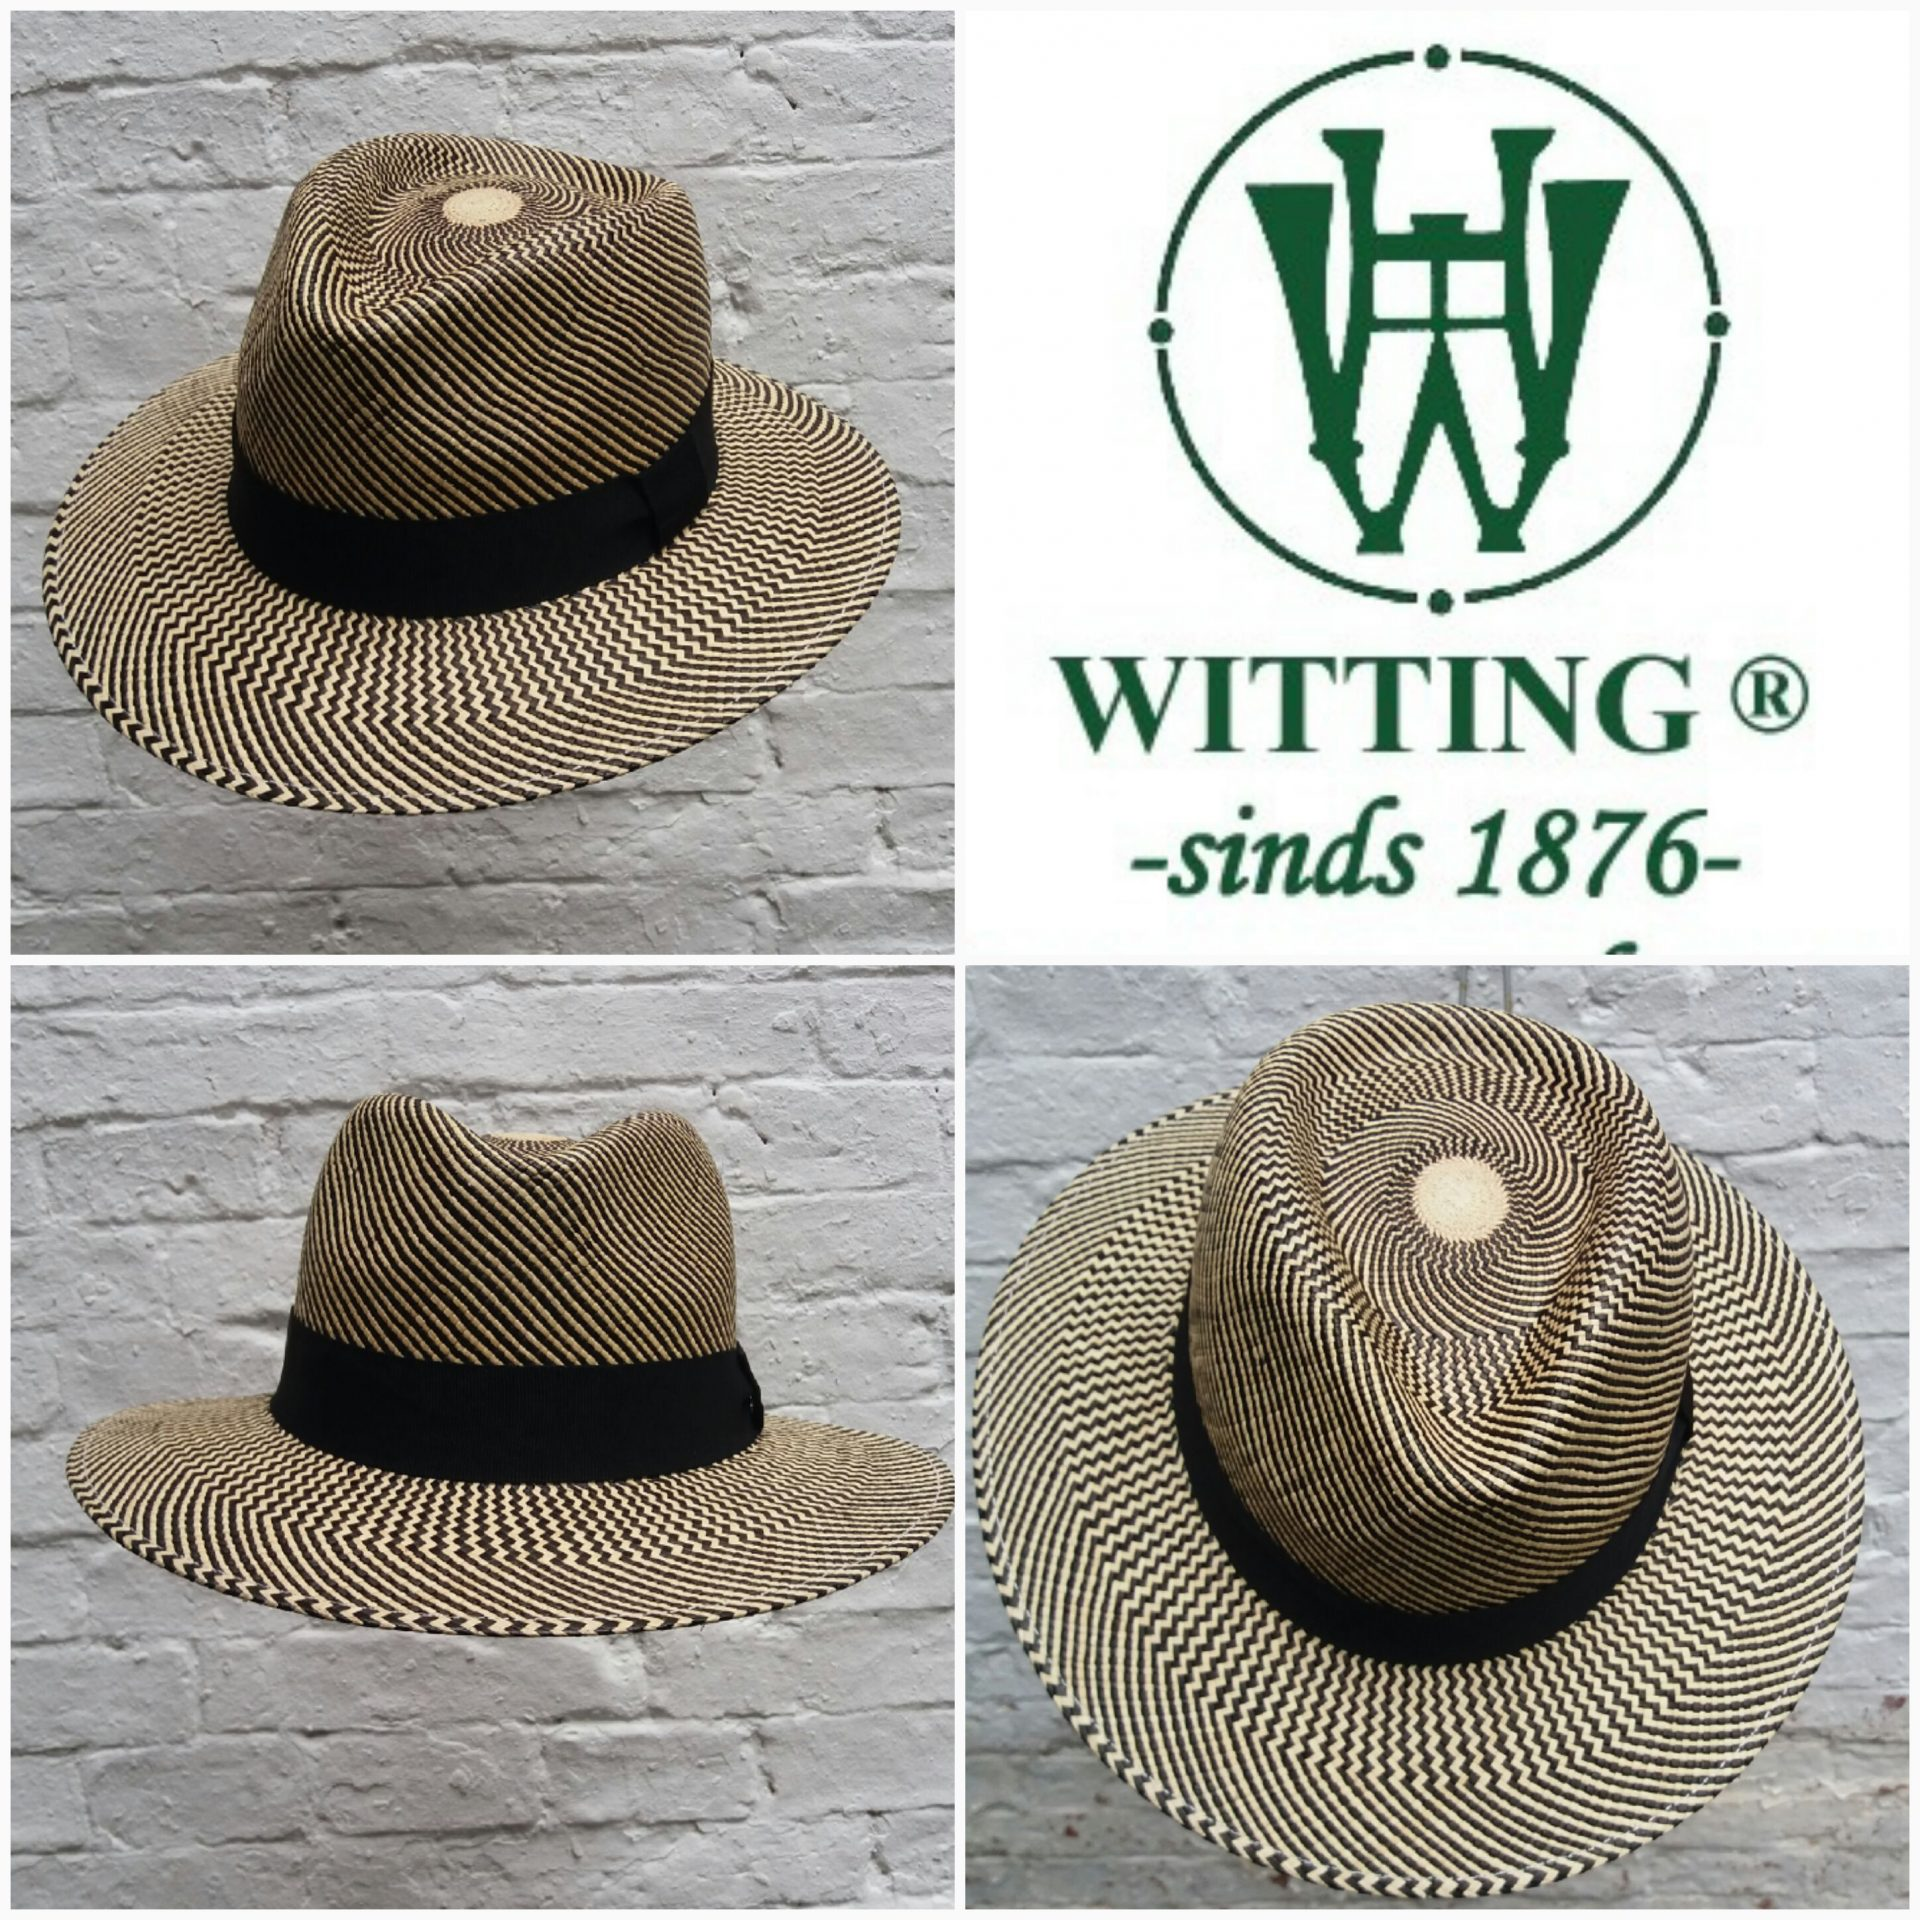 Collection h witting and son mens hats panamahat black stripes panamahats voltagebd Image collections